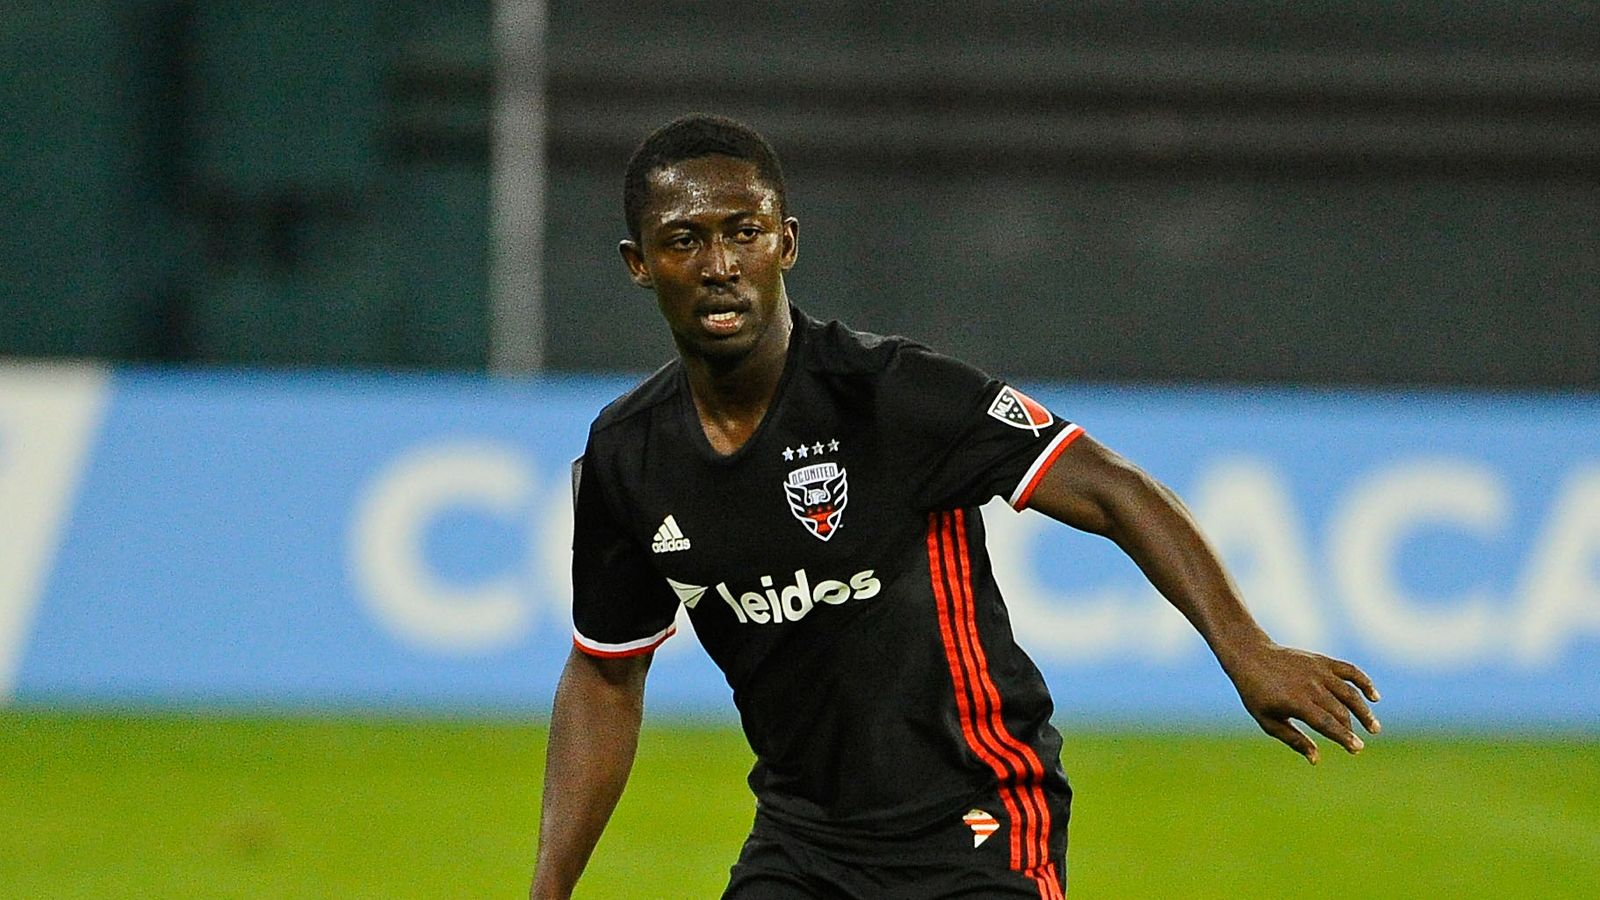 Patrick Nyarko scores as DC United dismantle David Accam's Chicago Fire